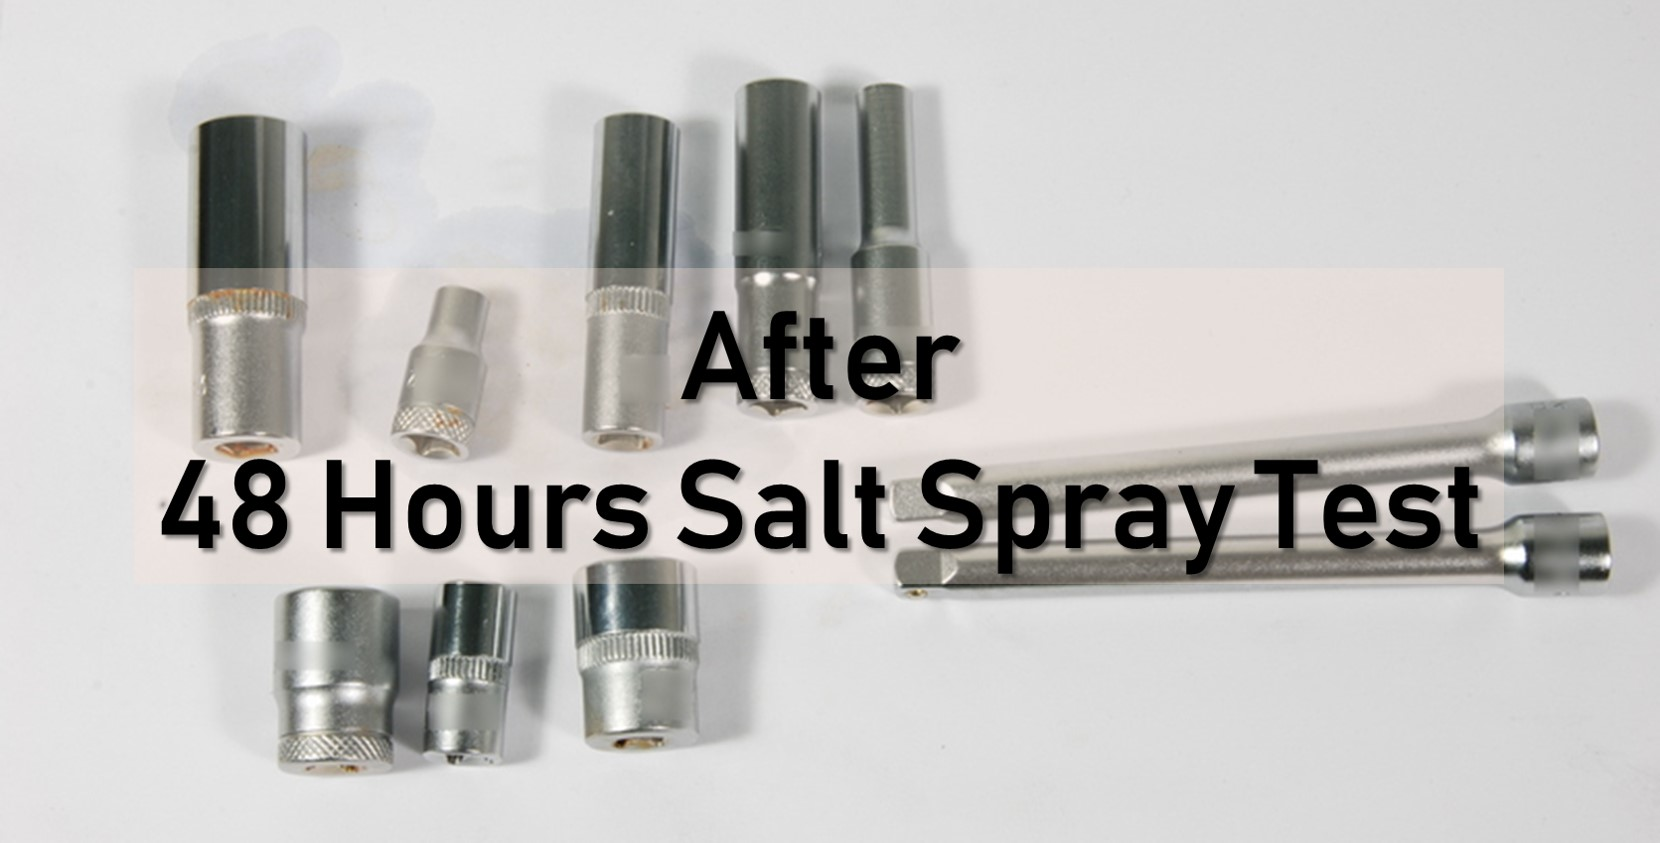 Socket Salt Spray Test